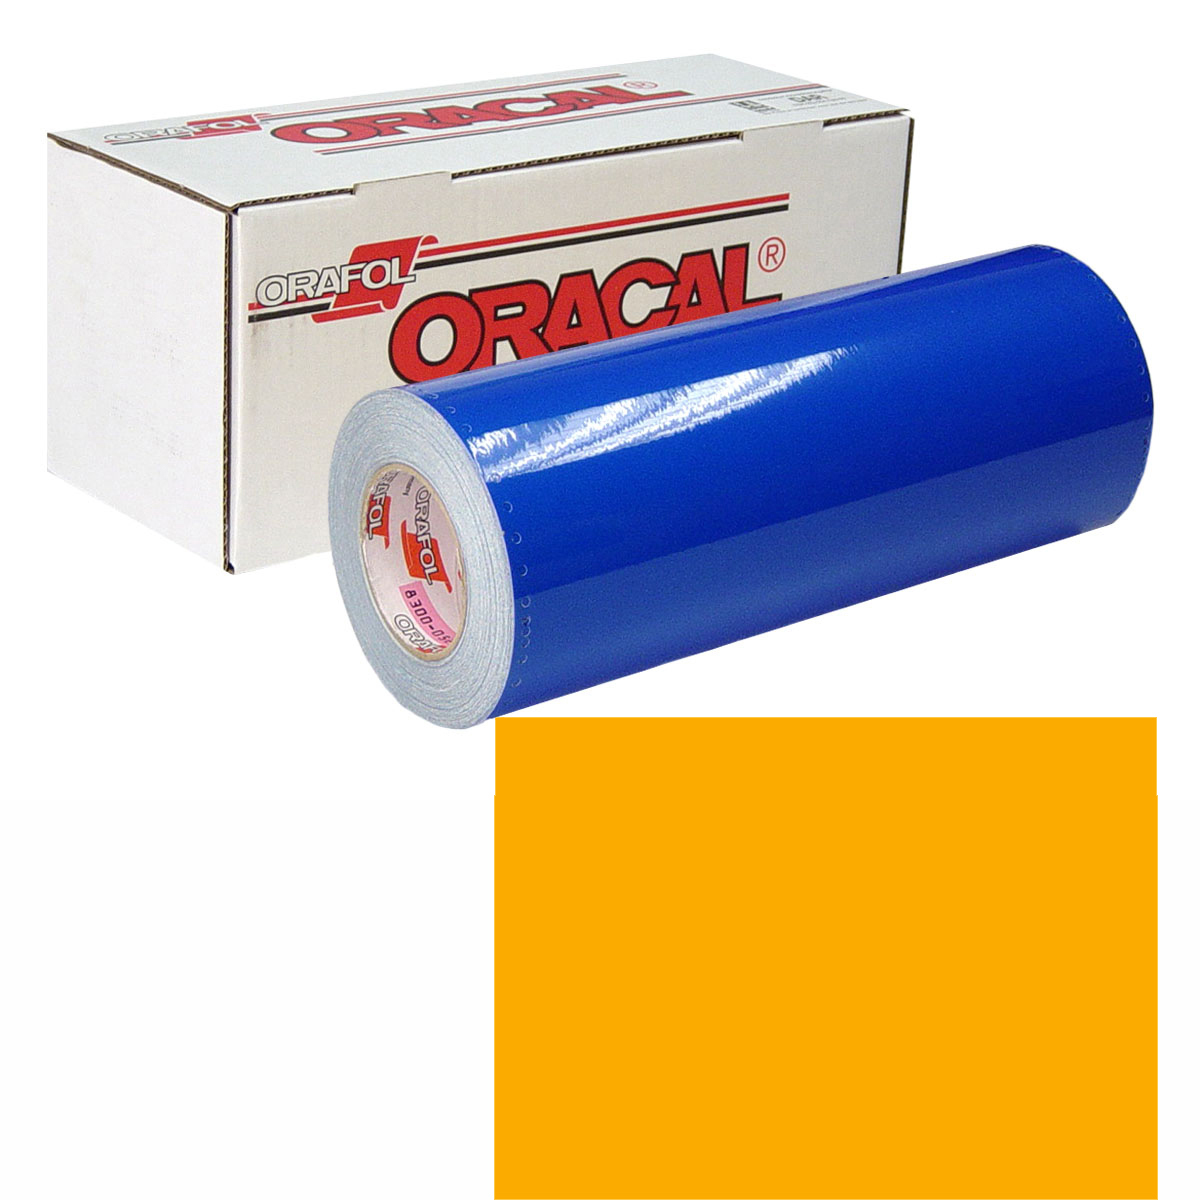 ORACAL 631 15In X 50Yd 020 Golden Yellow